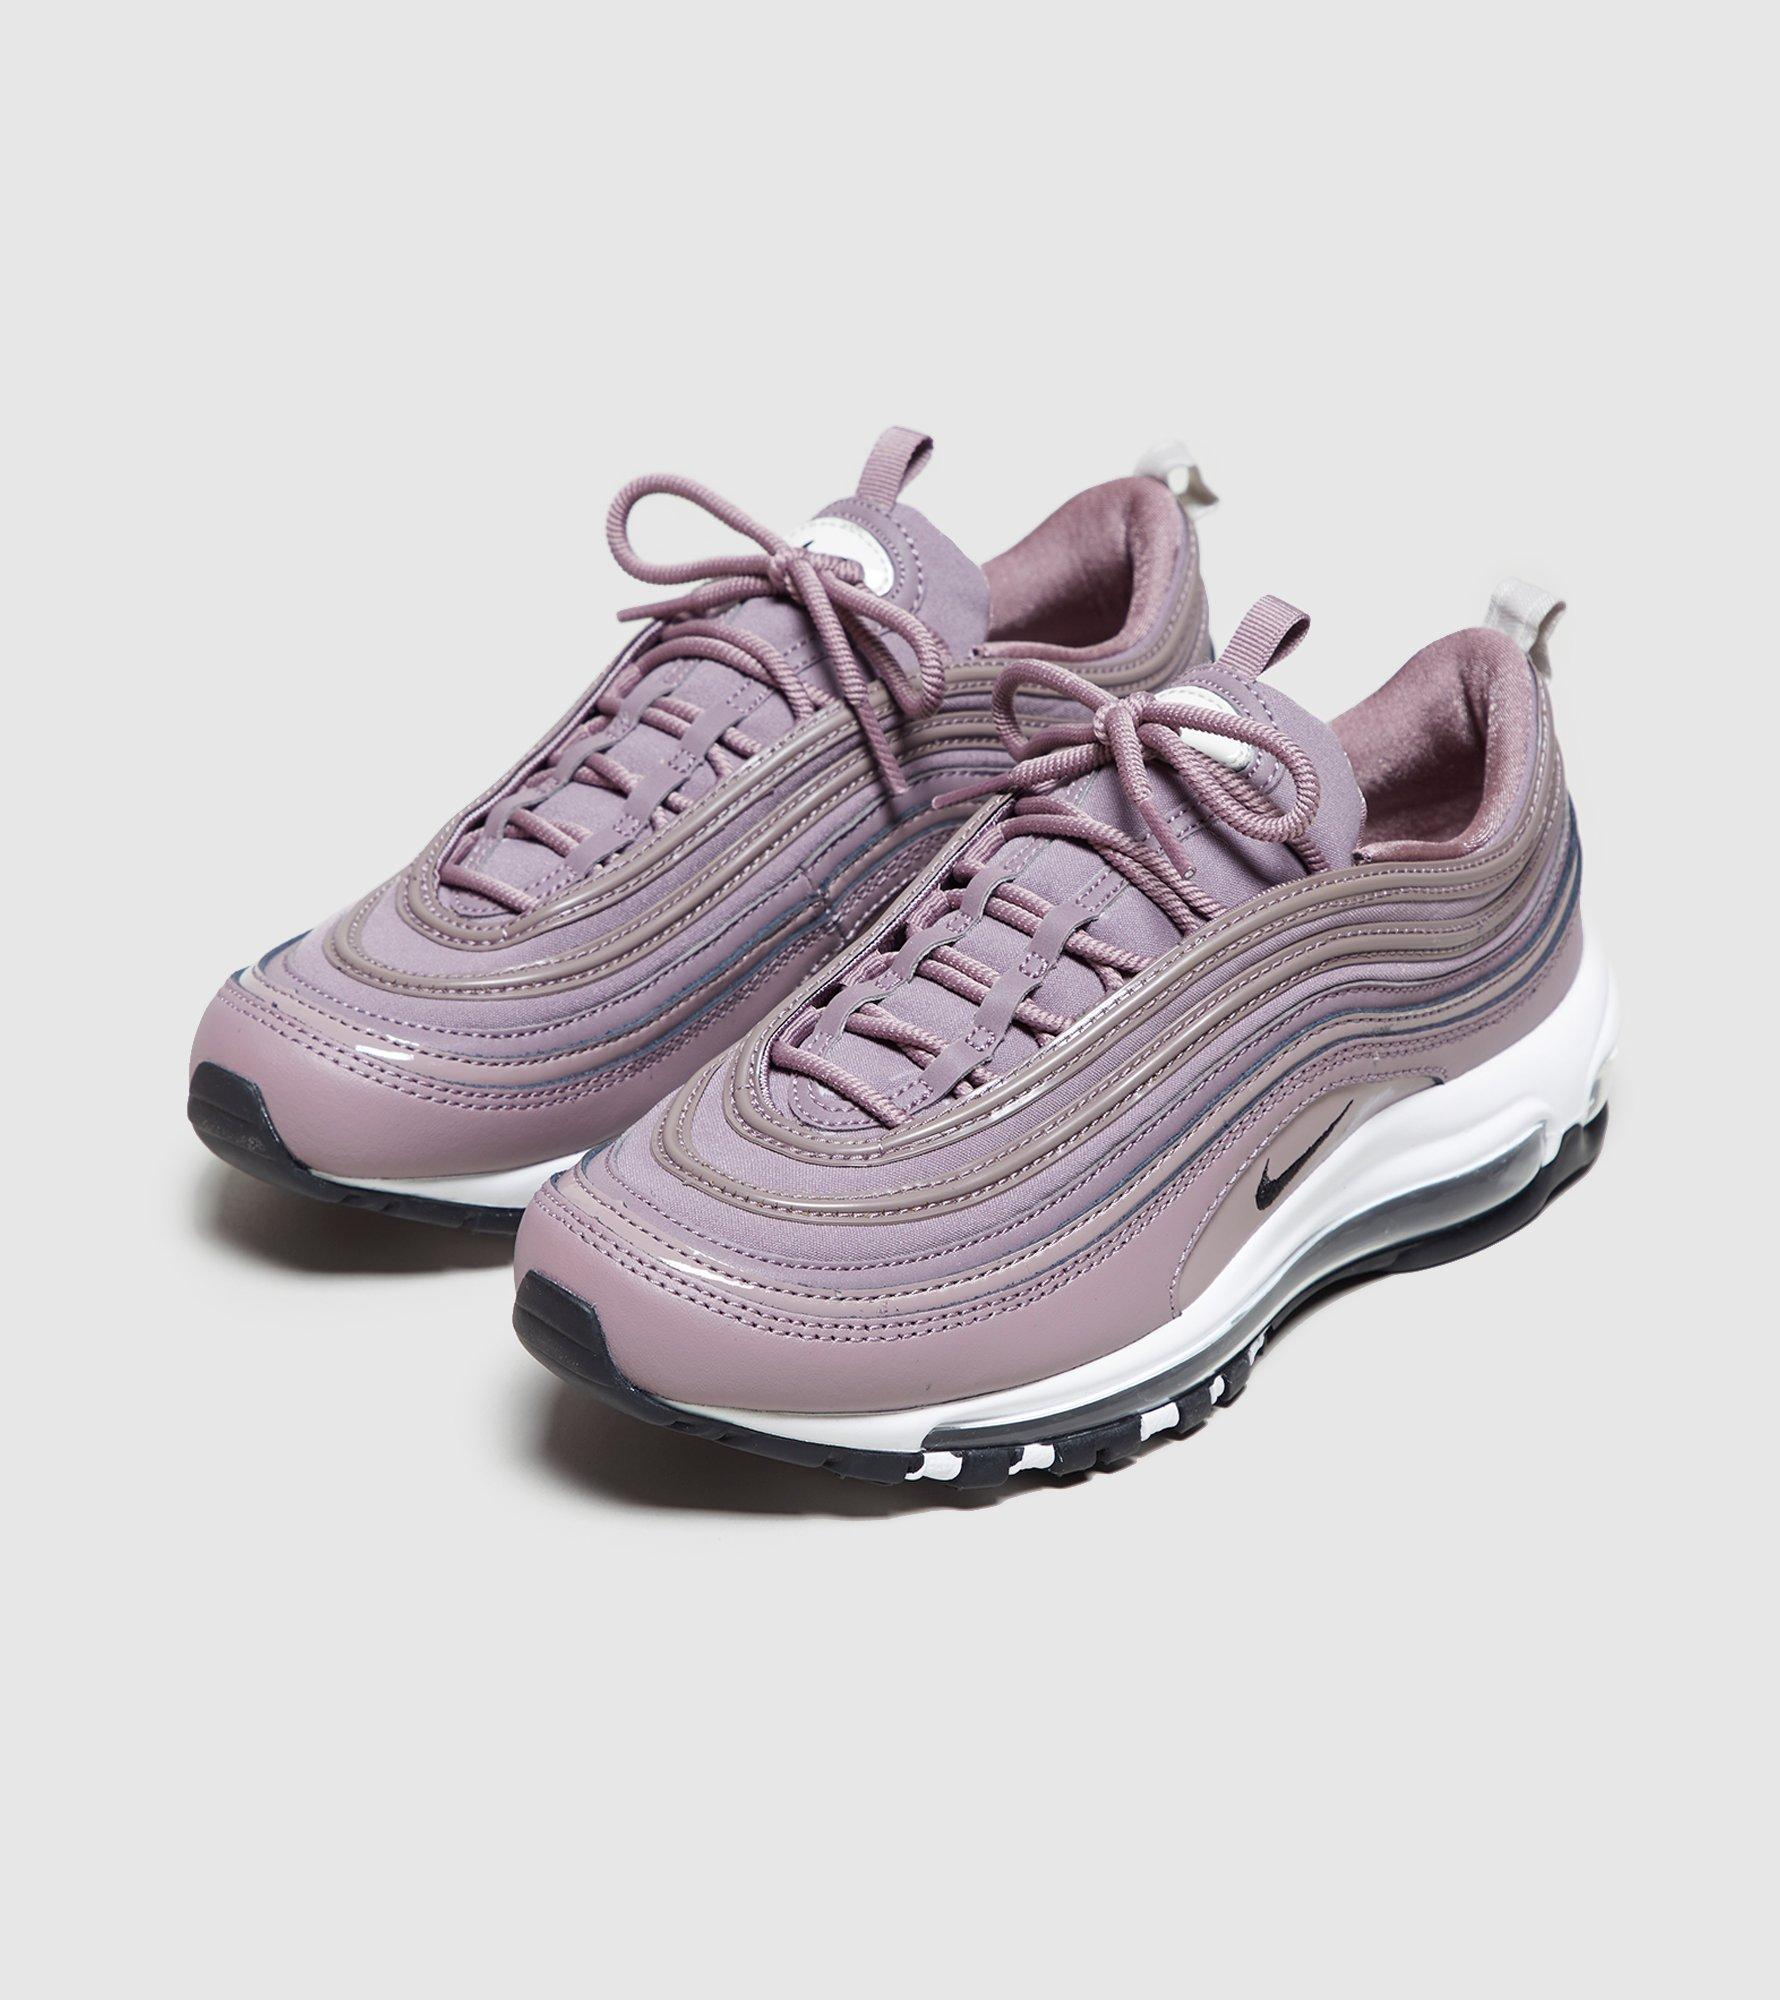 e4846fbb1574 ... 97 2013 hyp mens 31753500 iron purple atomic orange 81bc2 ea5f6   closeout gallery. previously sold at size womens nike air max 51d9a 57aaf